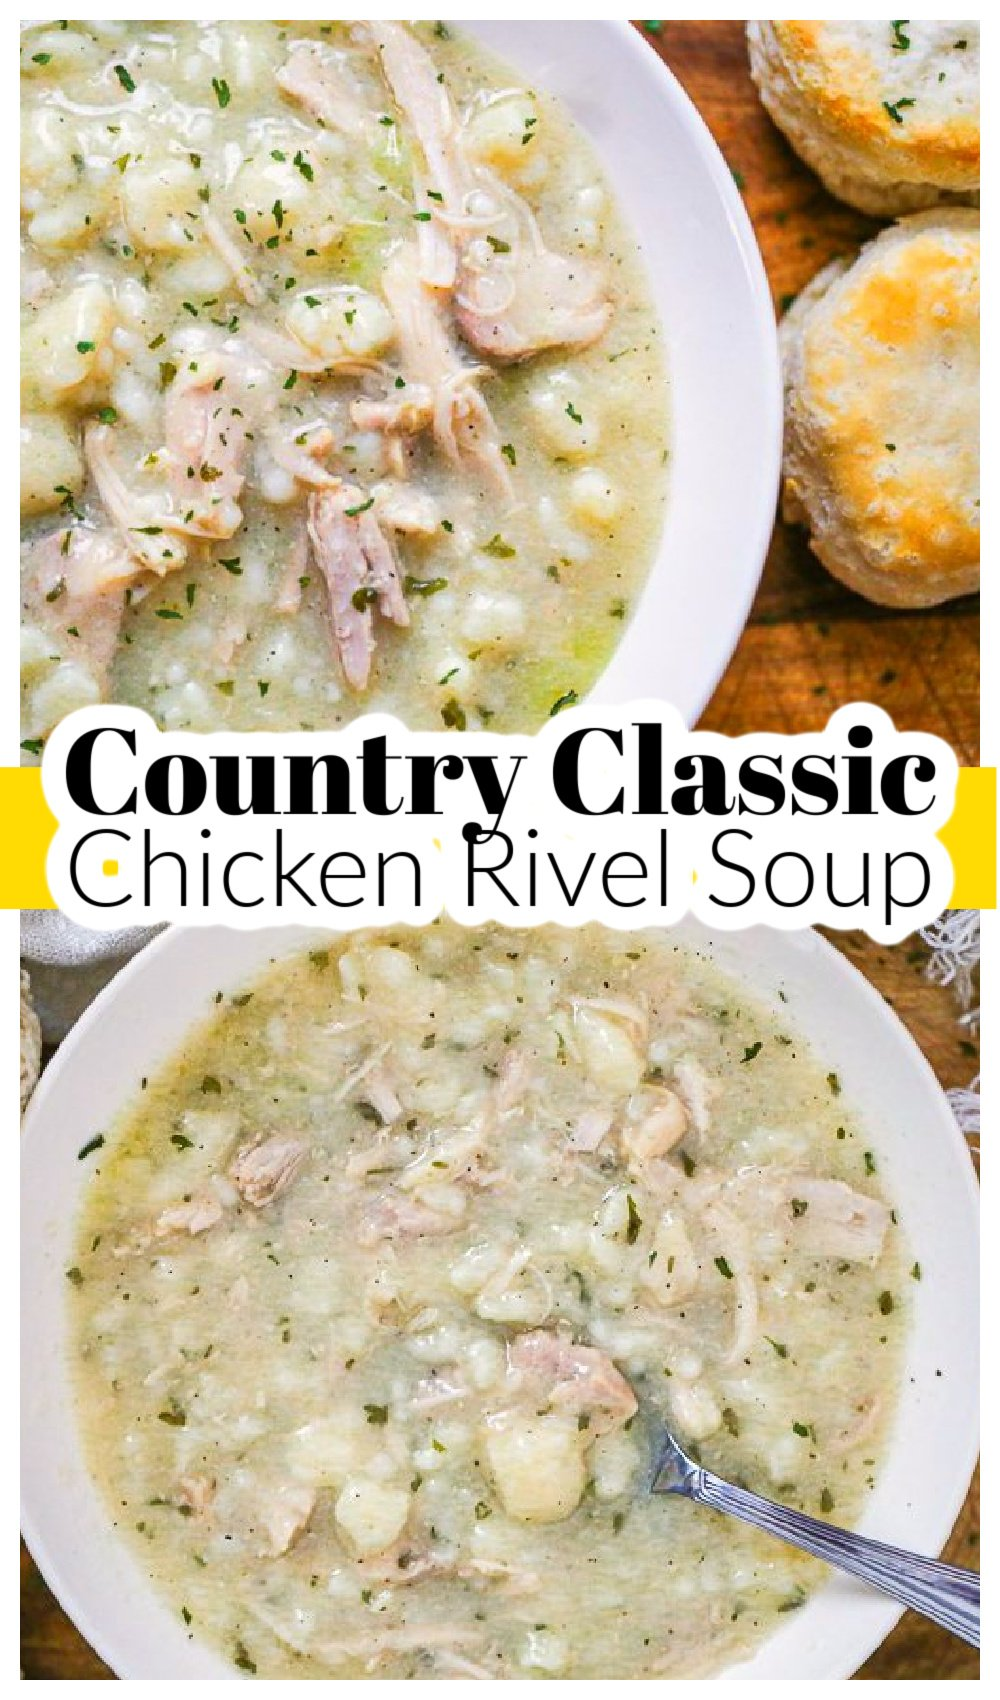 Country Classic Chicken Rivel Soup